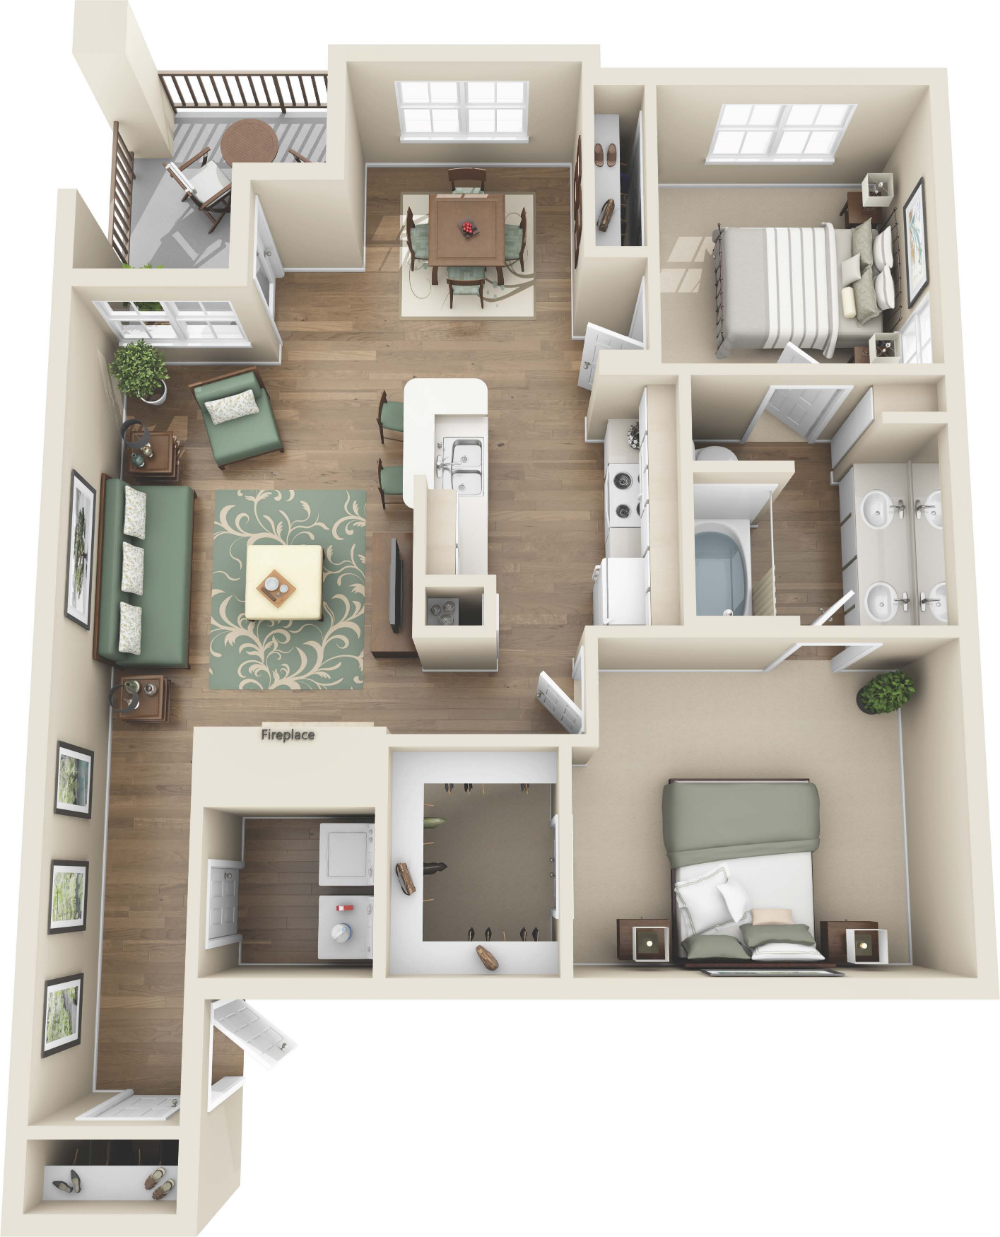 Luxury One Two Bedroom Apartments In Colorado Springs Co Apartment Layout Apartment Floor Plans Remodel Bedroom